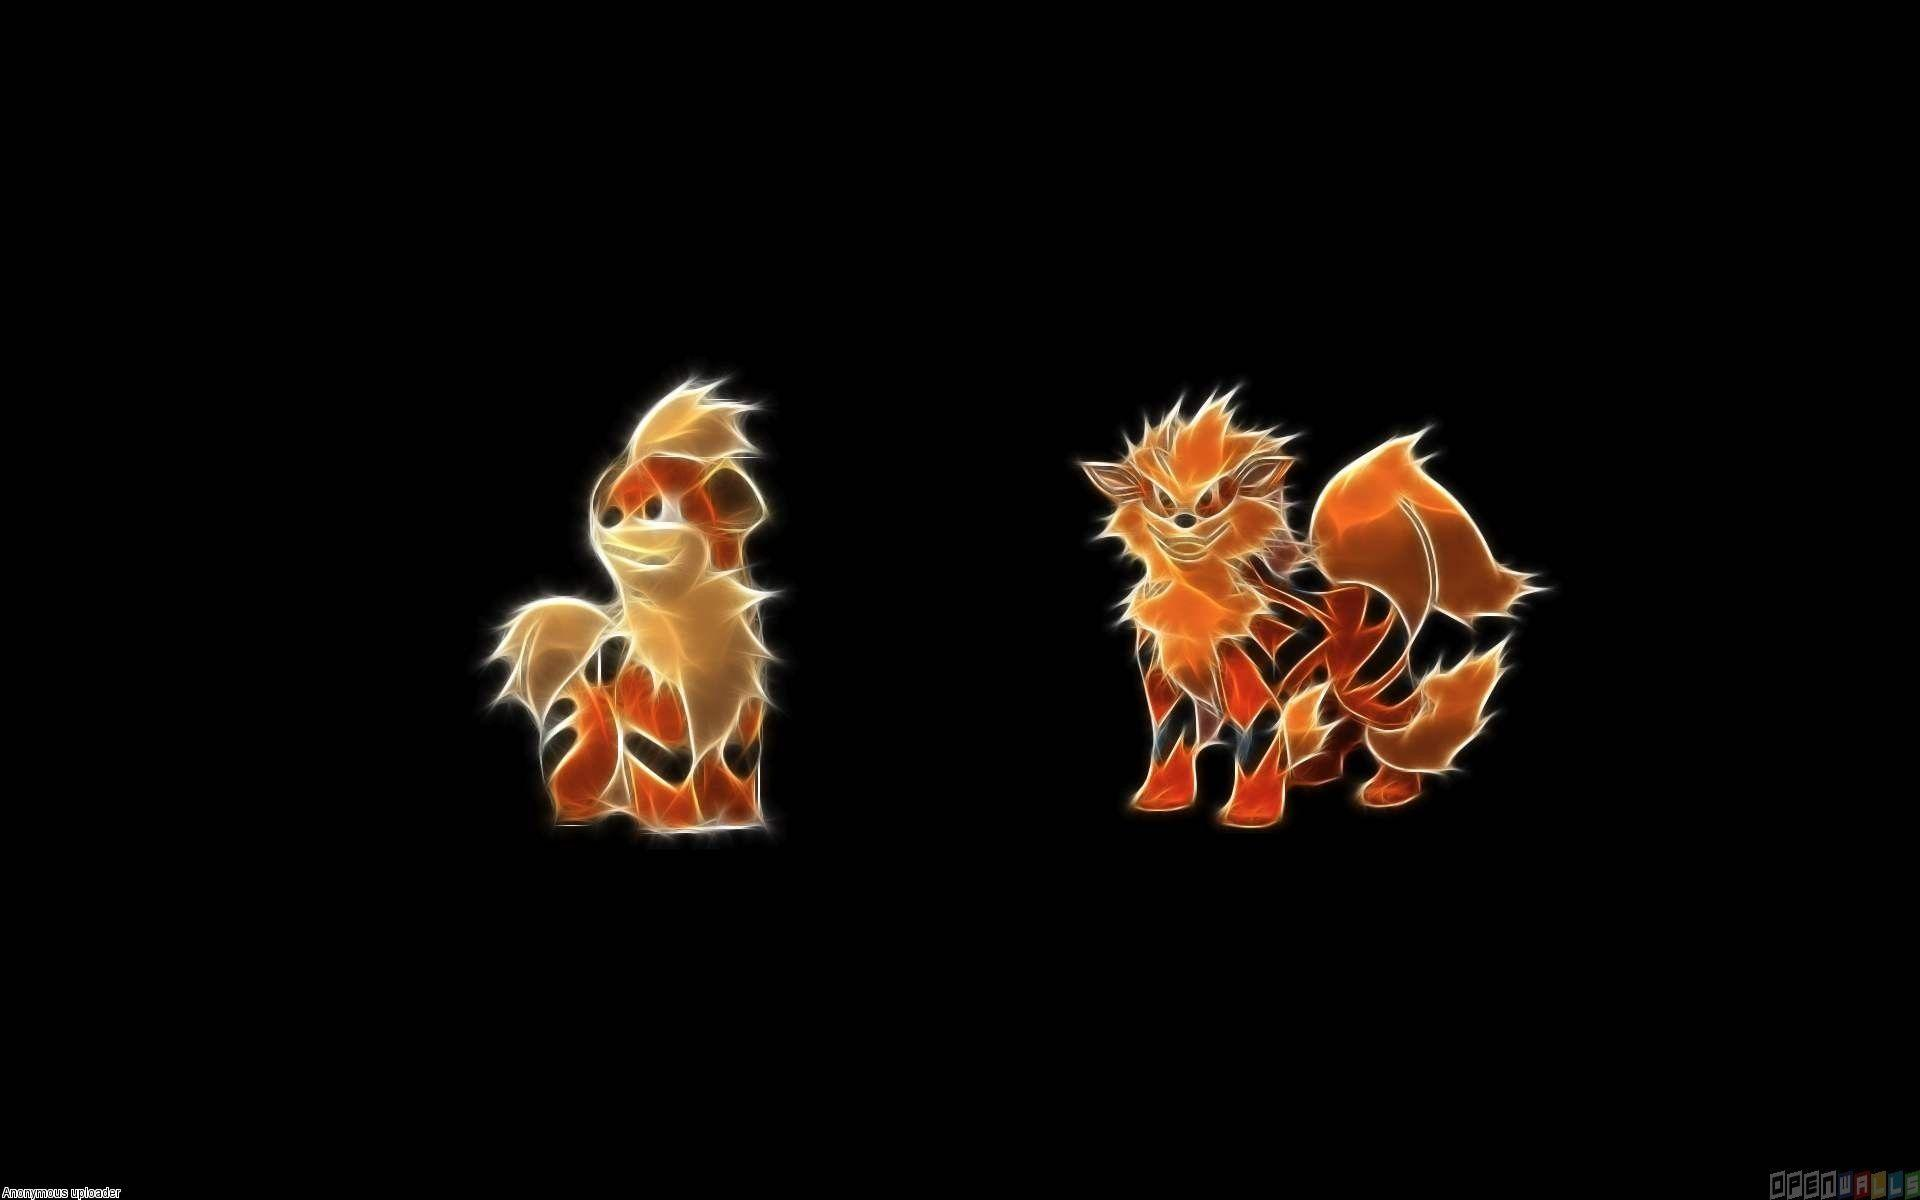 Growlithe and arcanine wallpaper #21236 - Open Walls